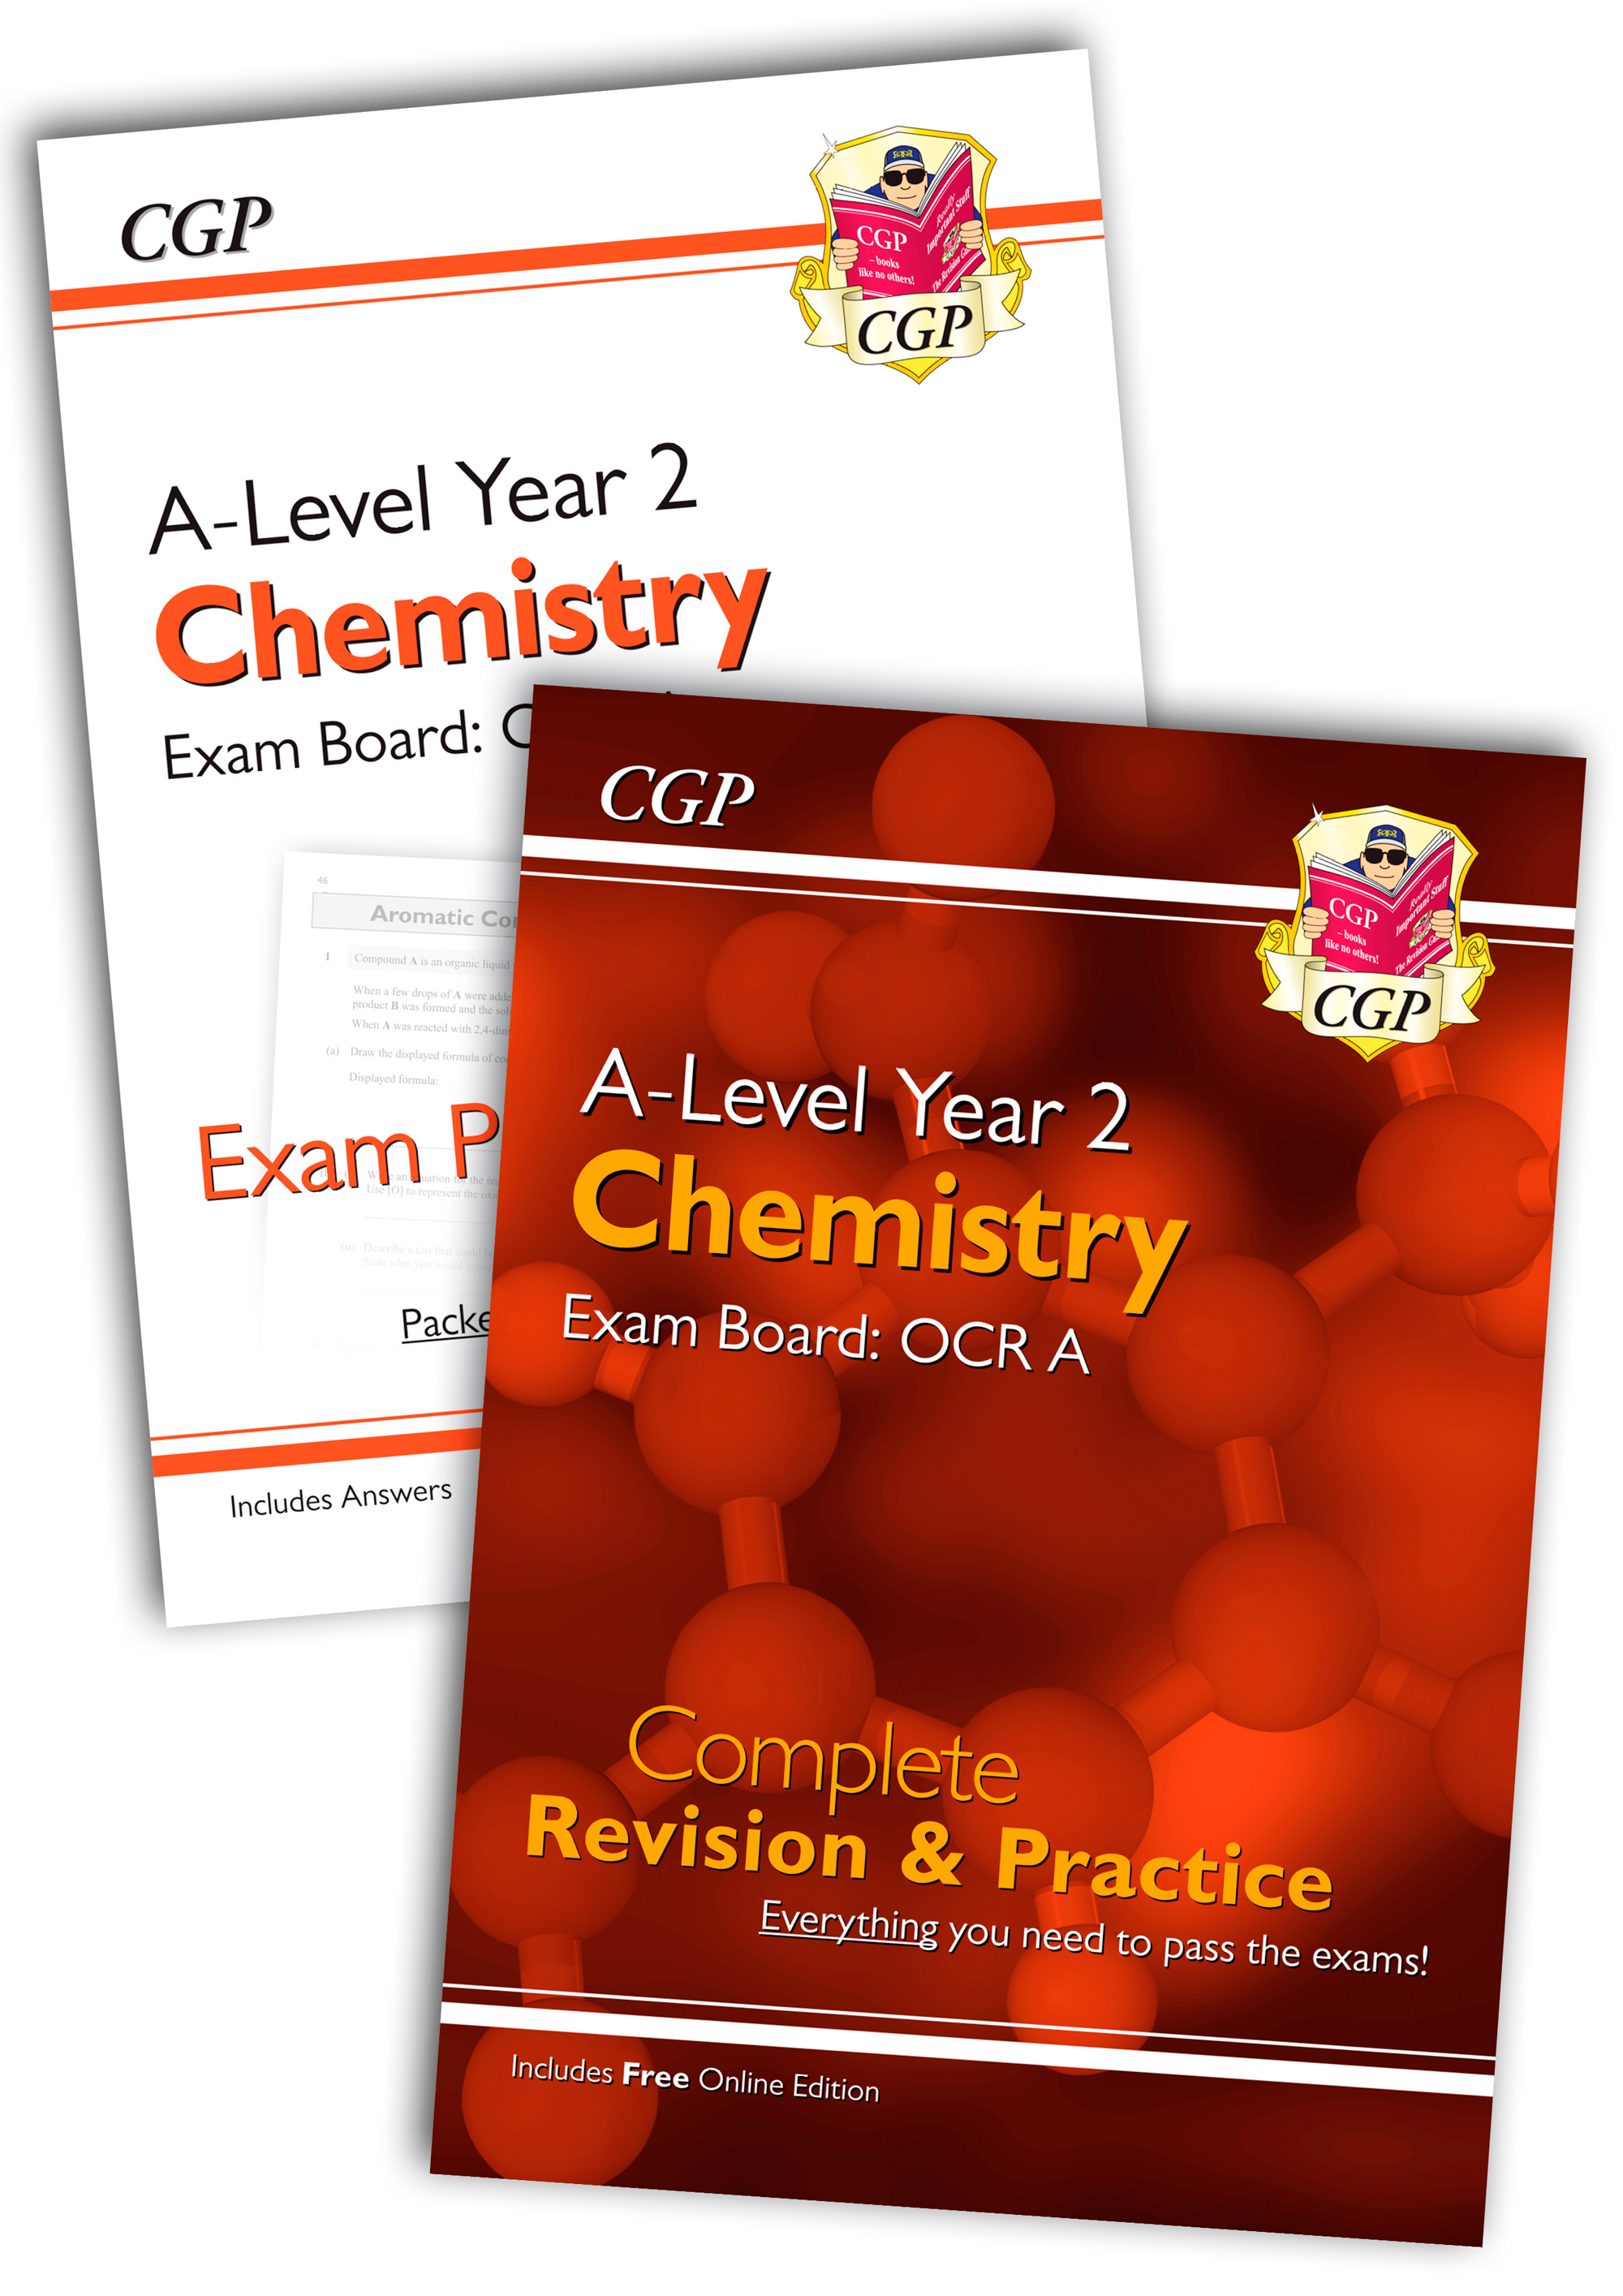 CRARQB61 - New 2018 Complete Revision and Exam Practice A-Level Chemistry Bundle: OCR A Year 2